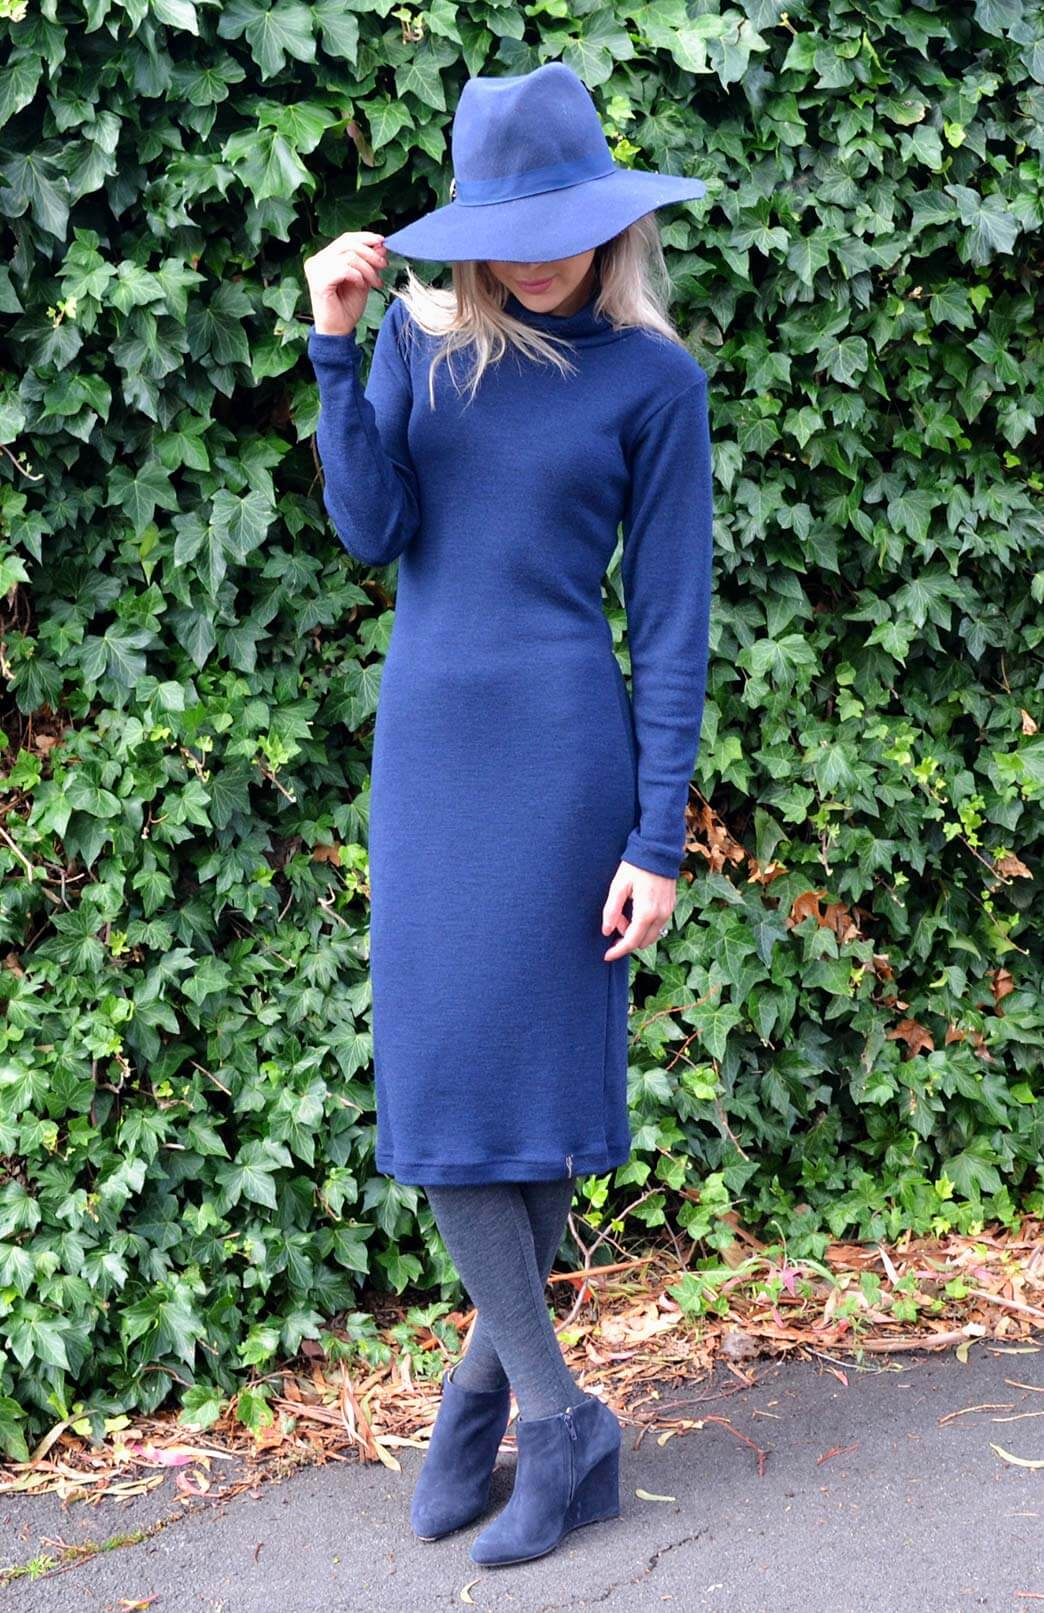 Polo Neck Dress - Women's Merino Wool Long Sleeve Polo Neck Dress - Smitten Merino Tasmania Australia